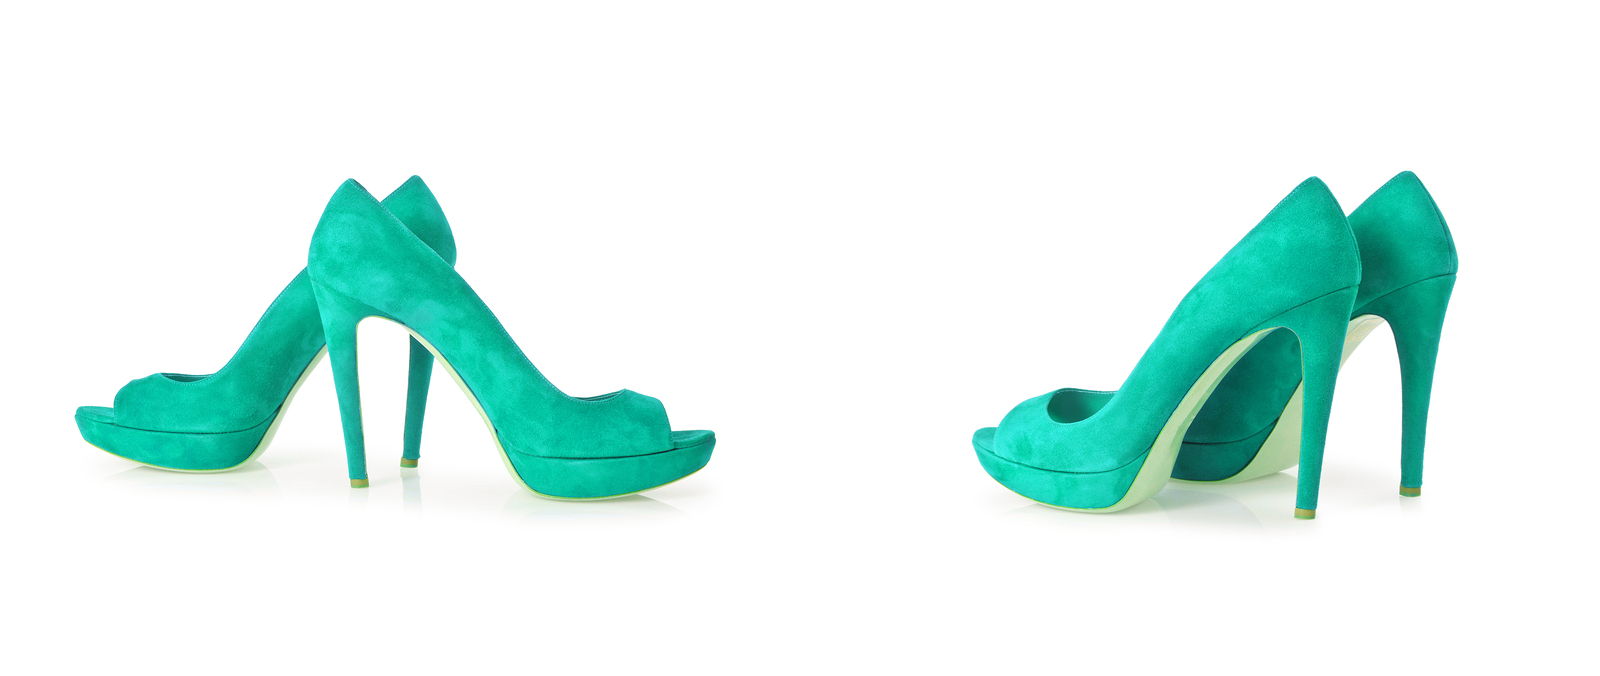 Teal Pair of Pumps: Product Photography Tips